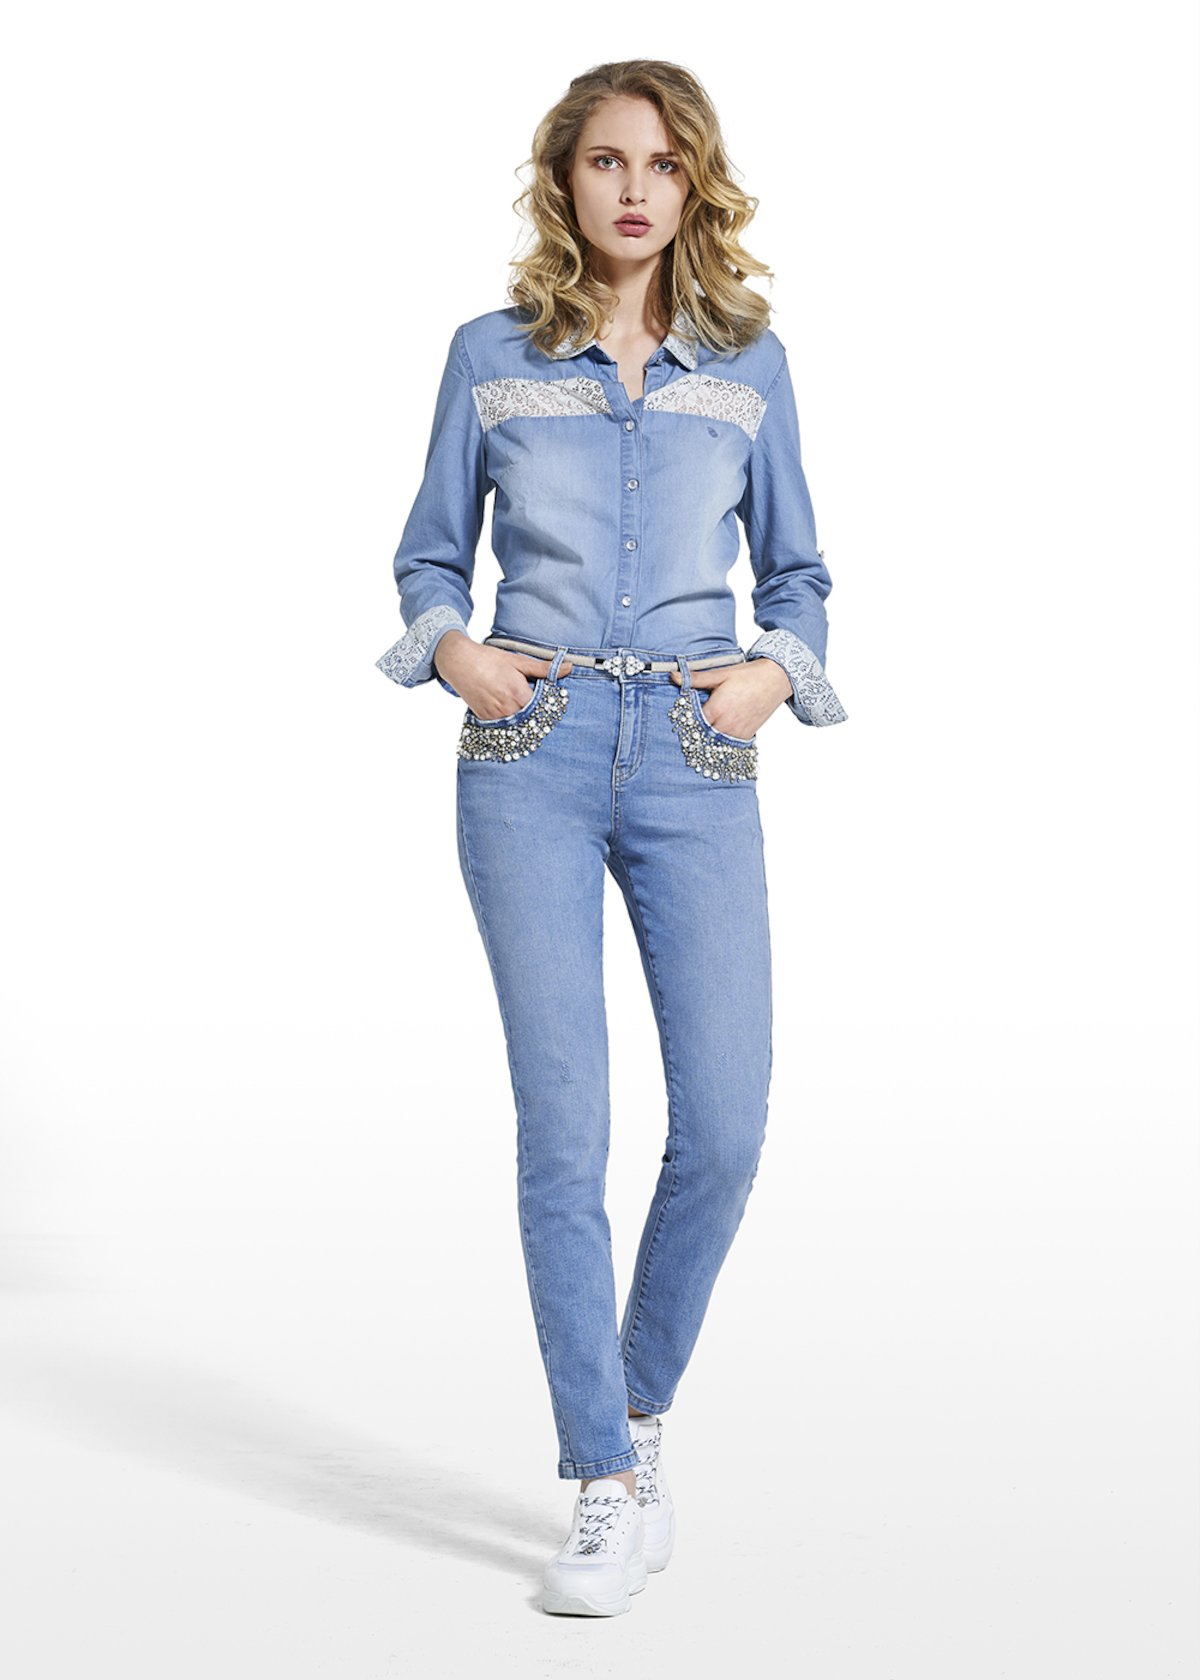 Blouse Caril in denim with lace detail - Light Denim - Woman